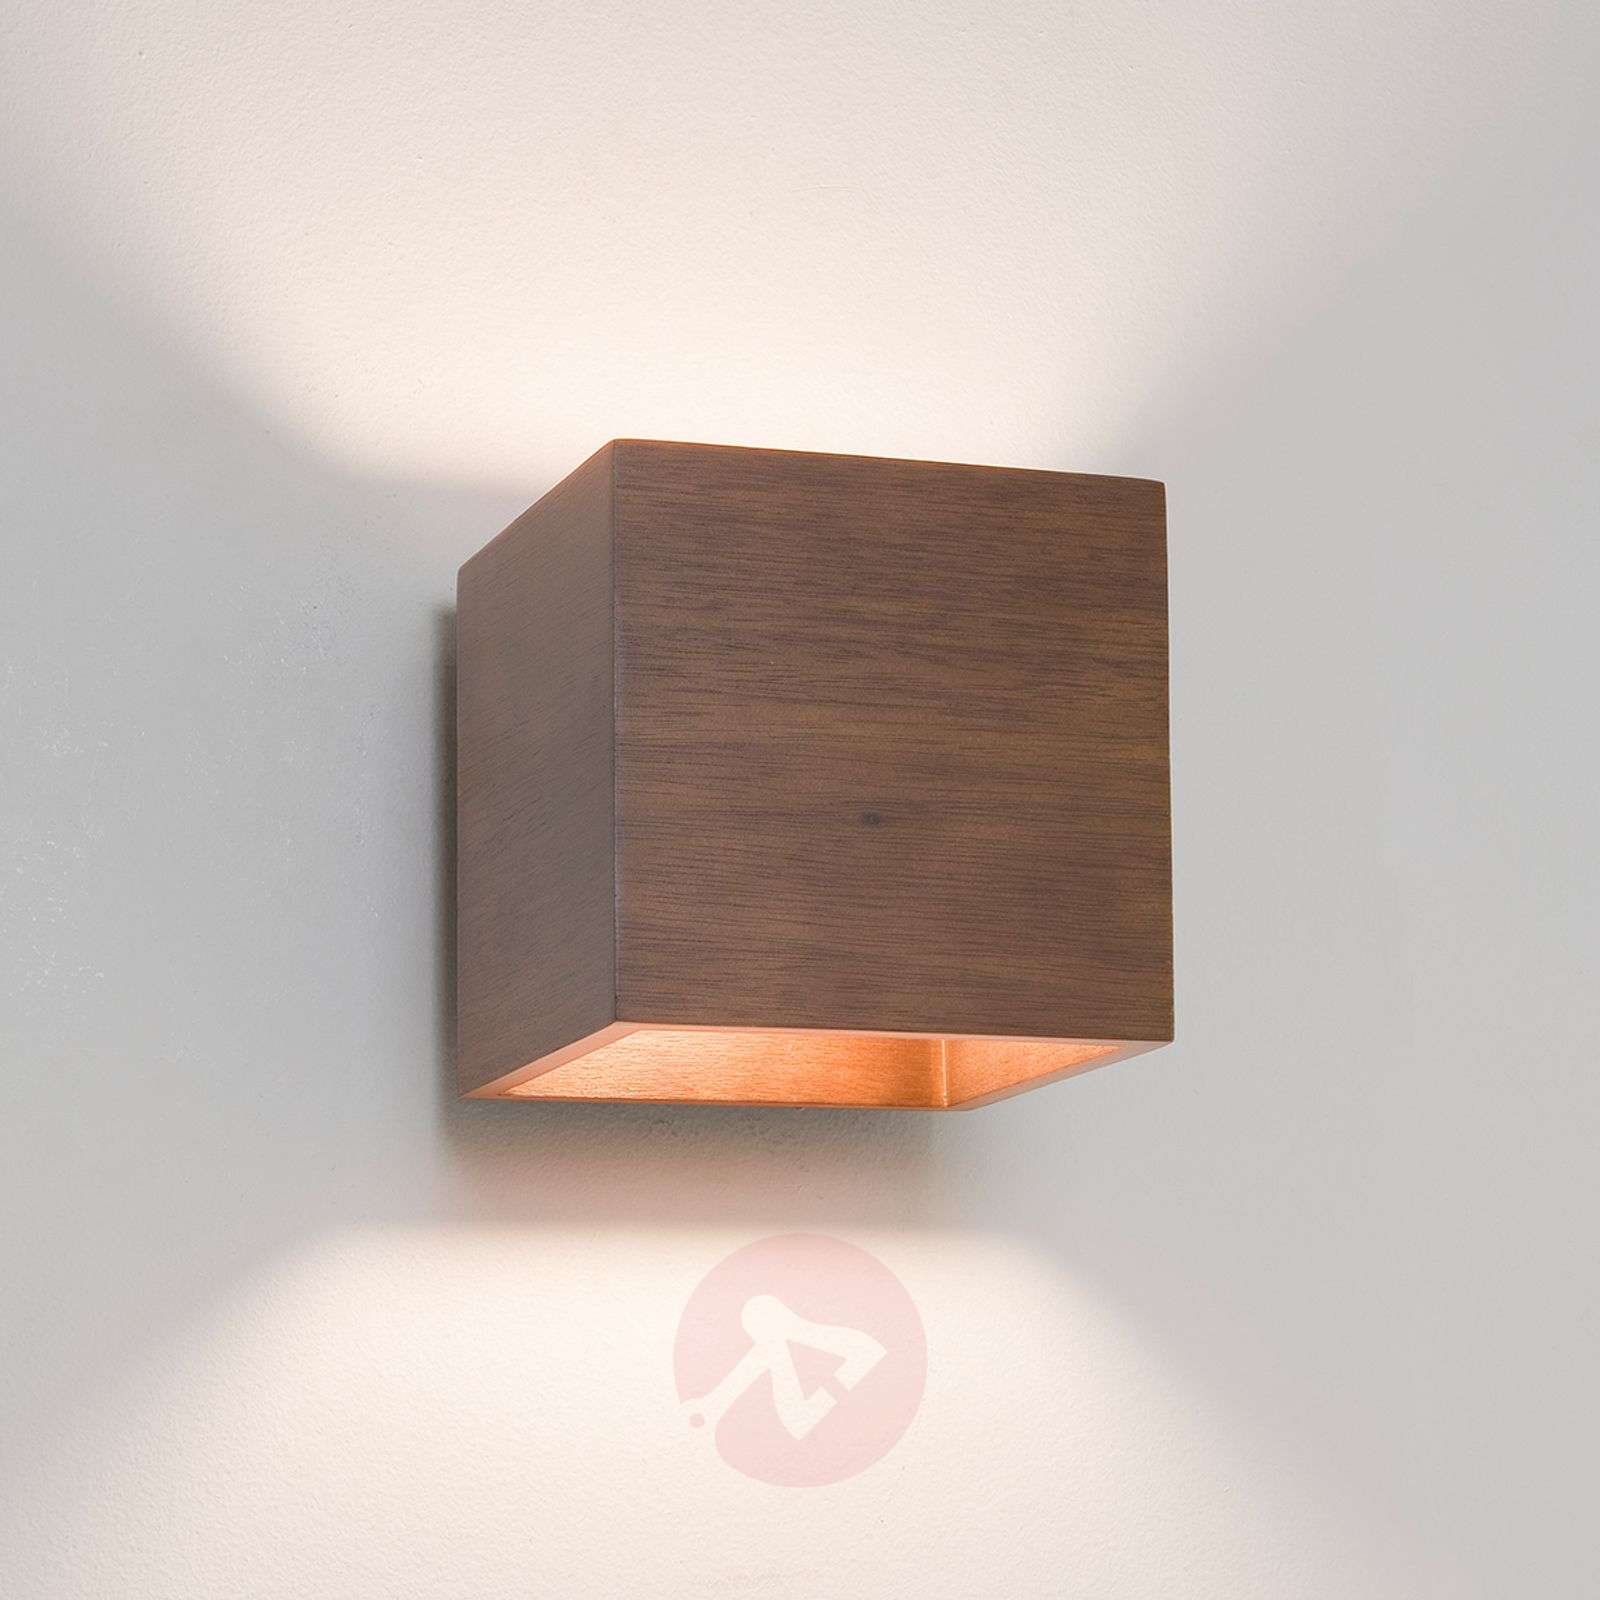 Cremona Wall Light Beautiful Wooden-1020241-03